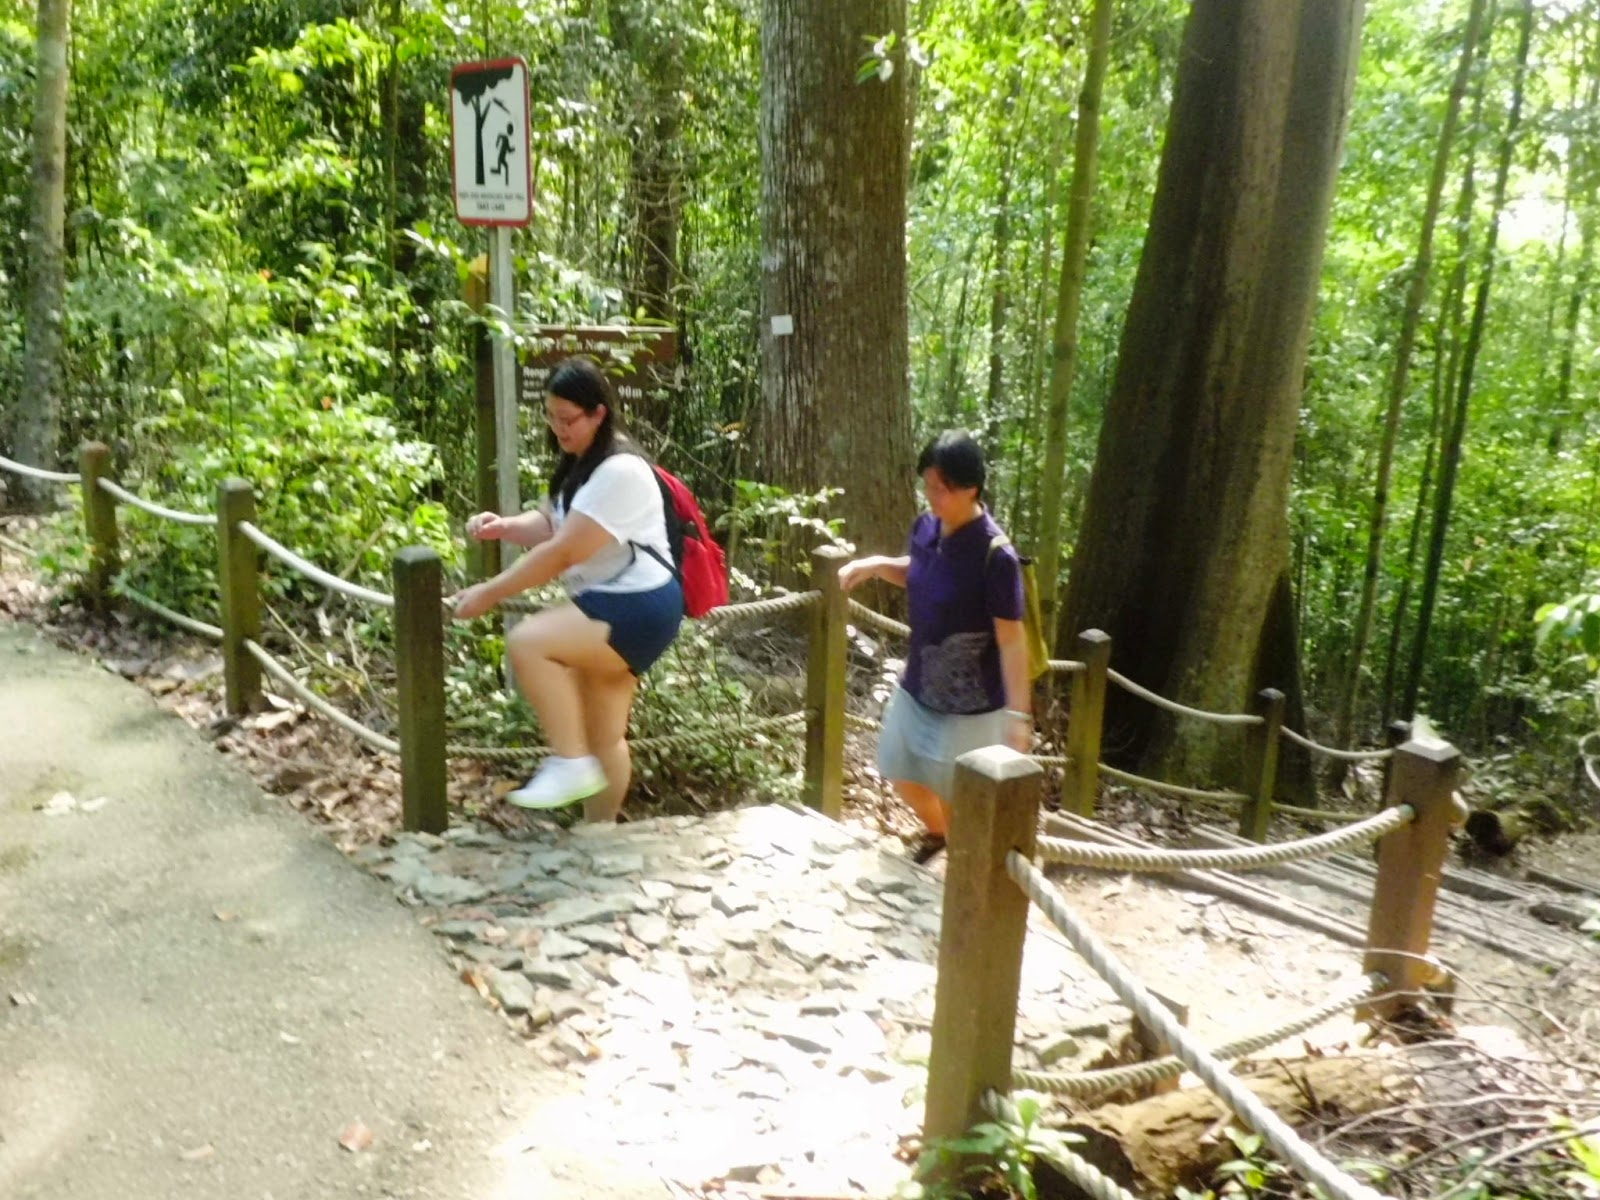 Climbing to Bukit Timah Nature Reserve's summit (163.63 m) from Dairy farm route